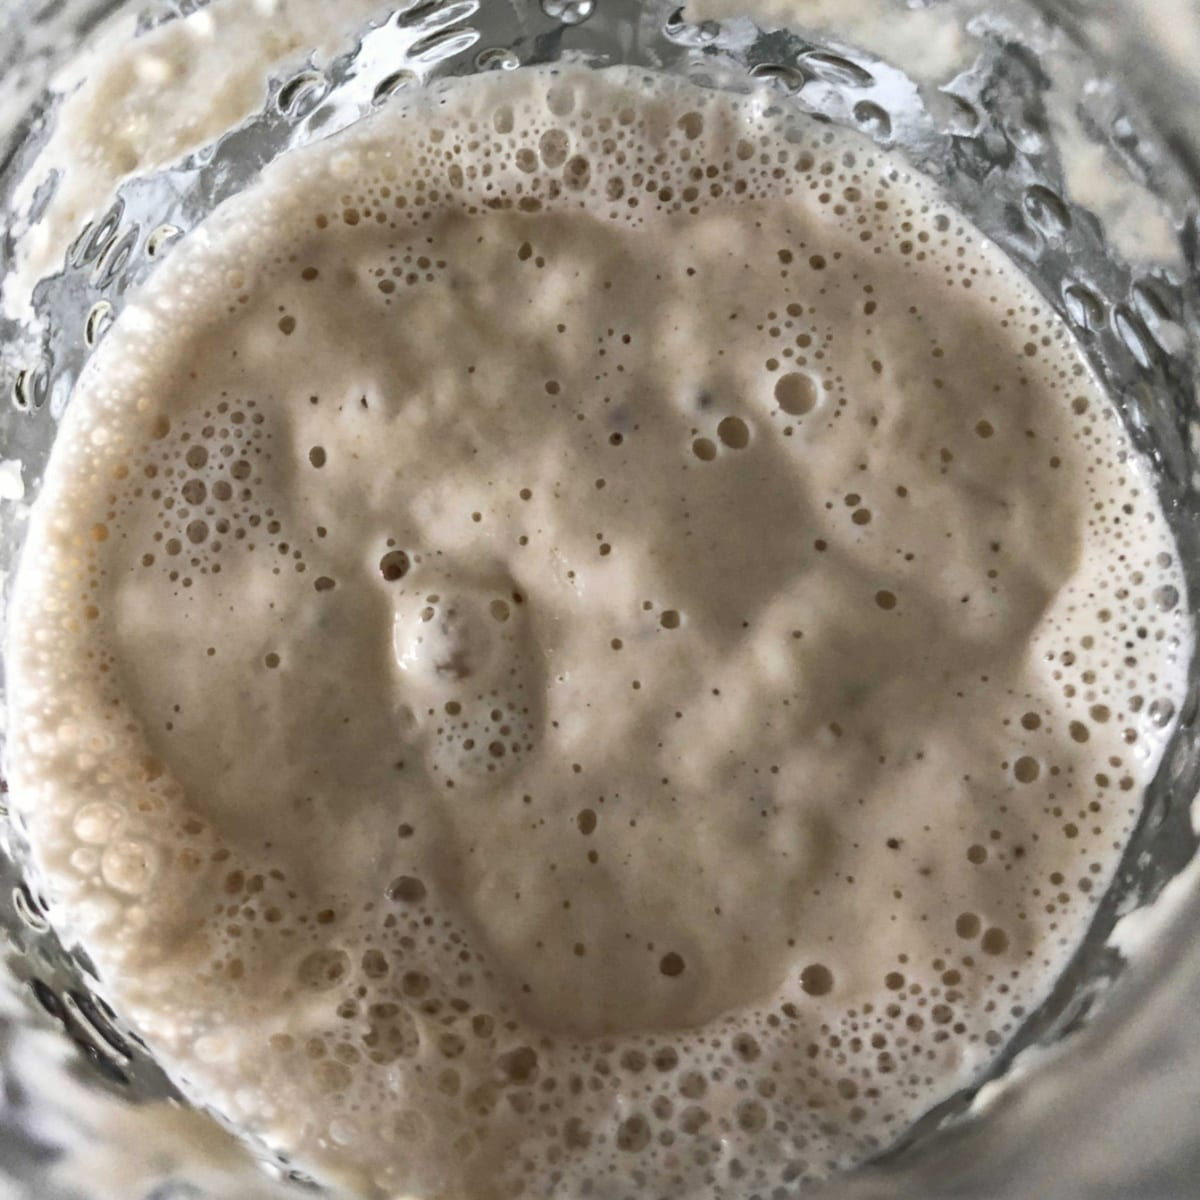 How to prepare sourdough starter for baking